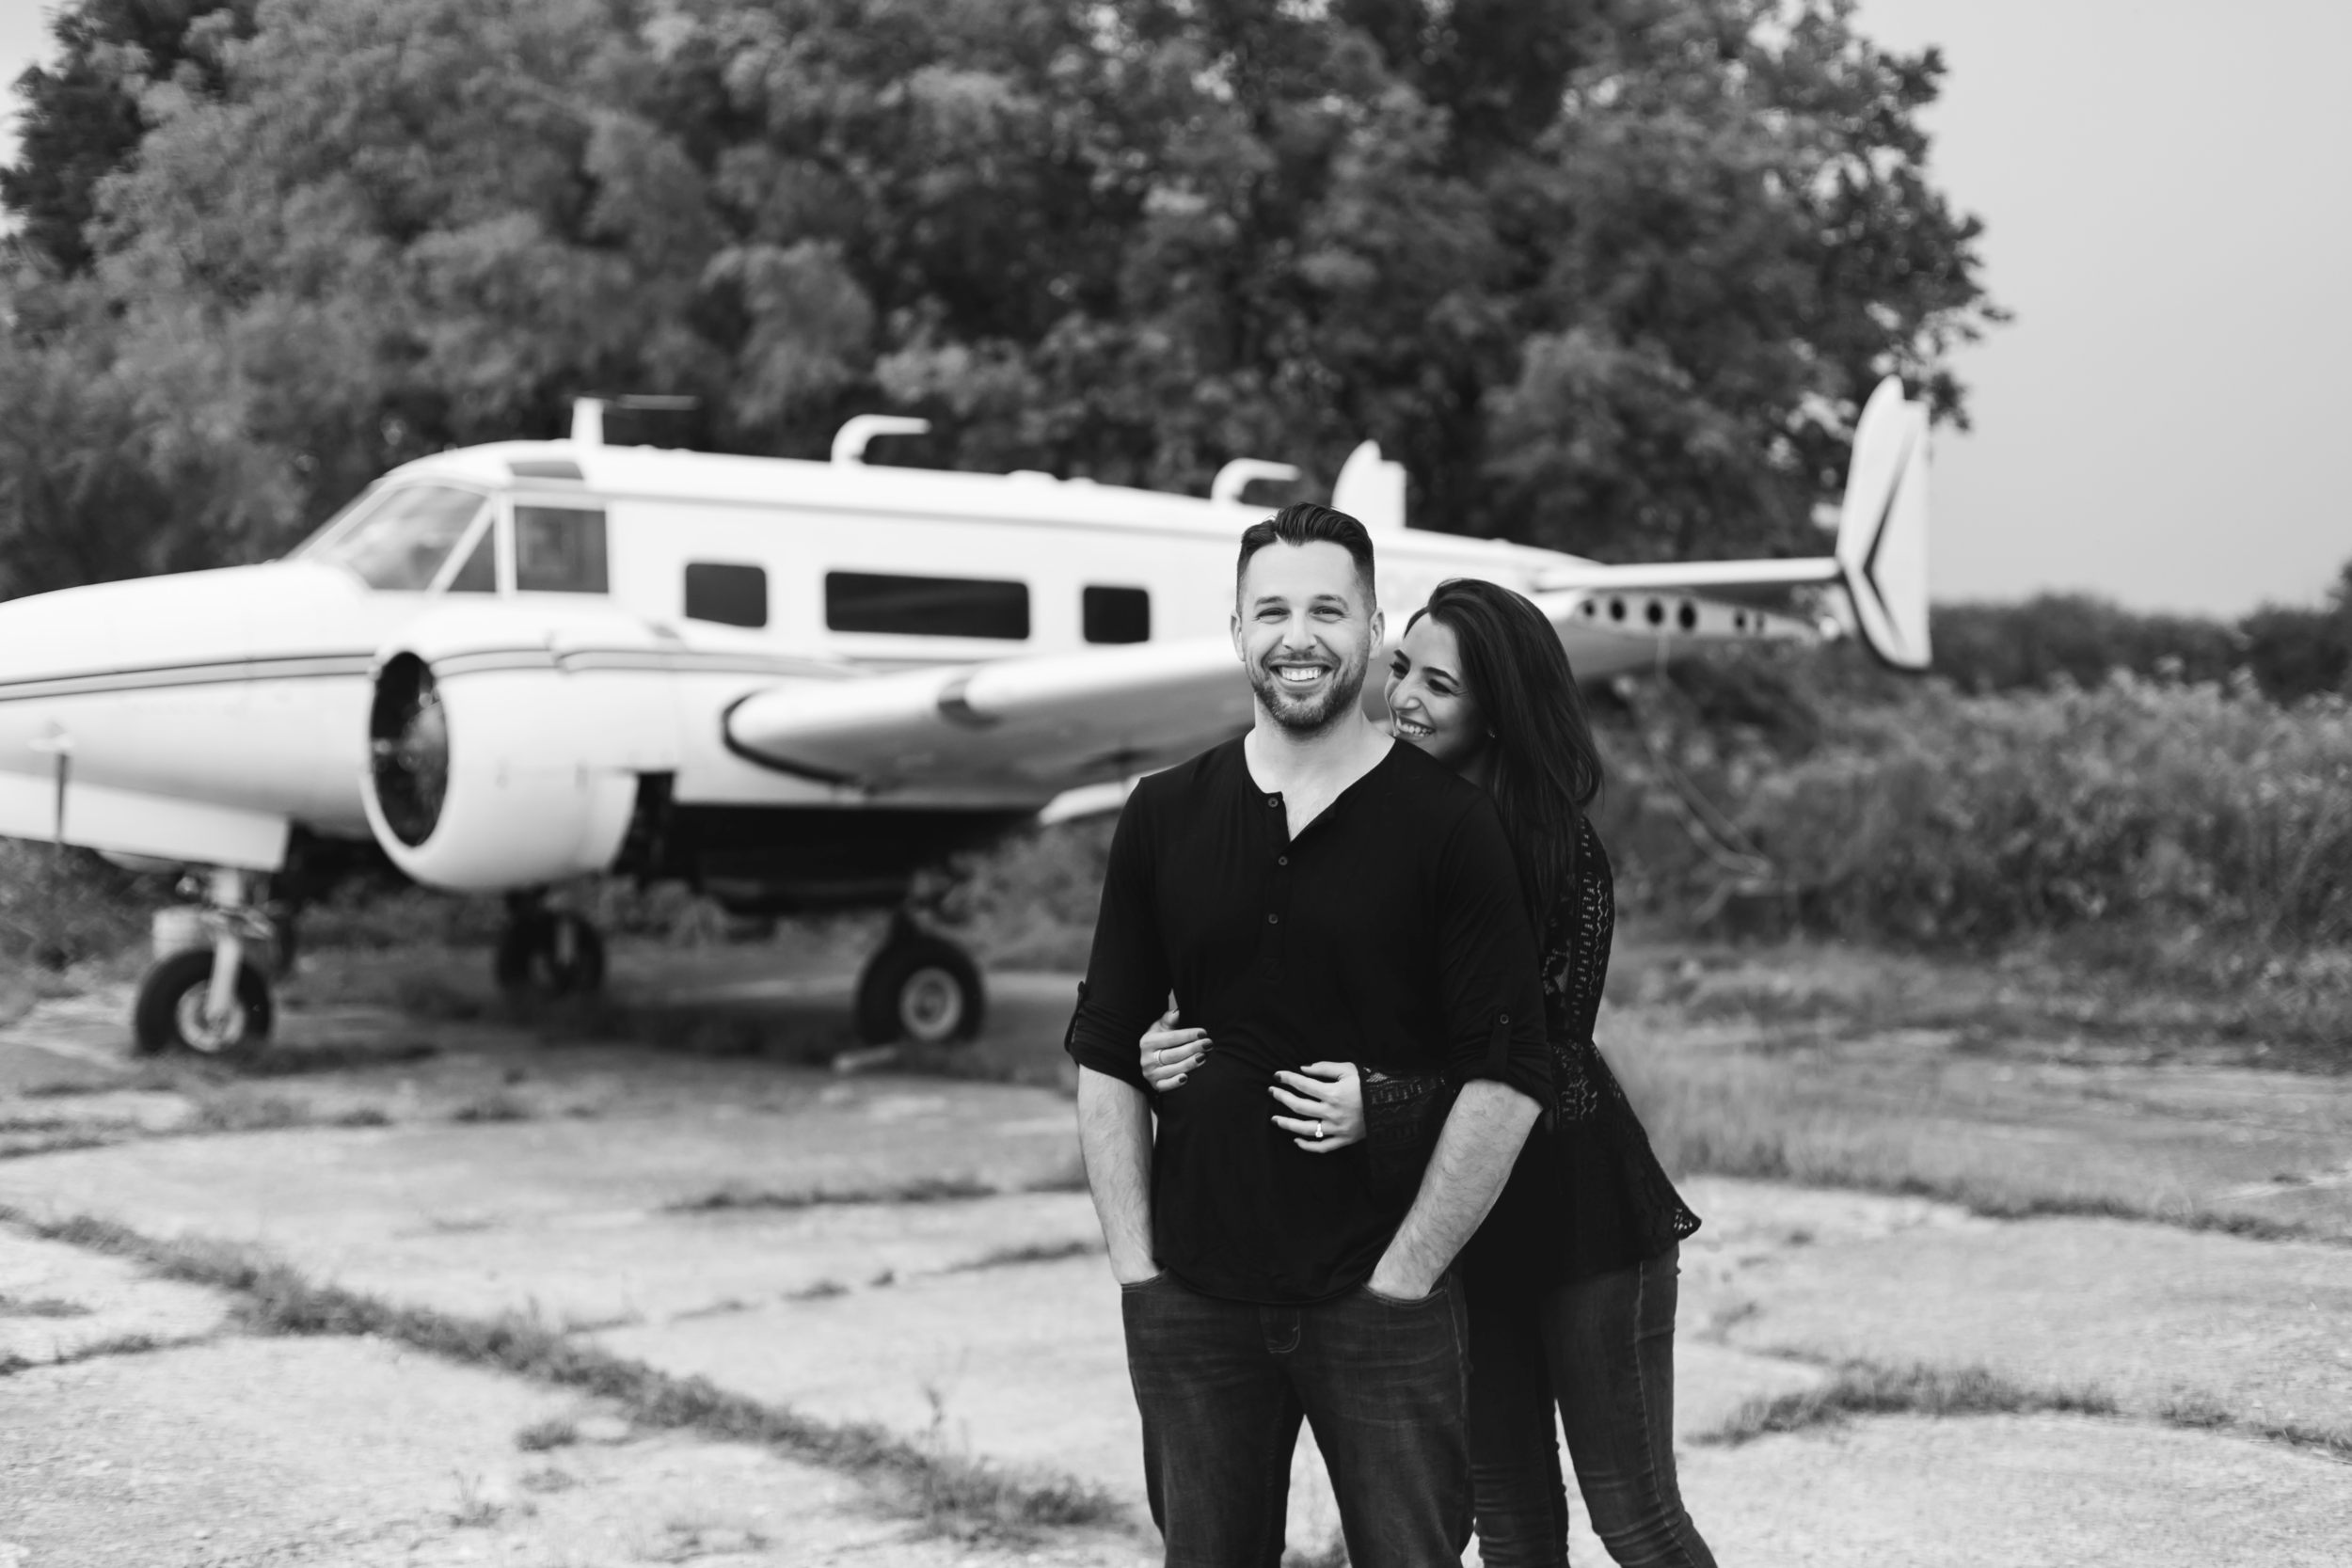 Engagement-Session-Hamilton-Burlington-Oakville-Toronto-Niagara-Wedding-Photographer-Engaged-Photography-Brantford-Airport-HamOnt-Engaged-Moments-by-Lauren-Photo-Image-5.png